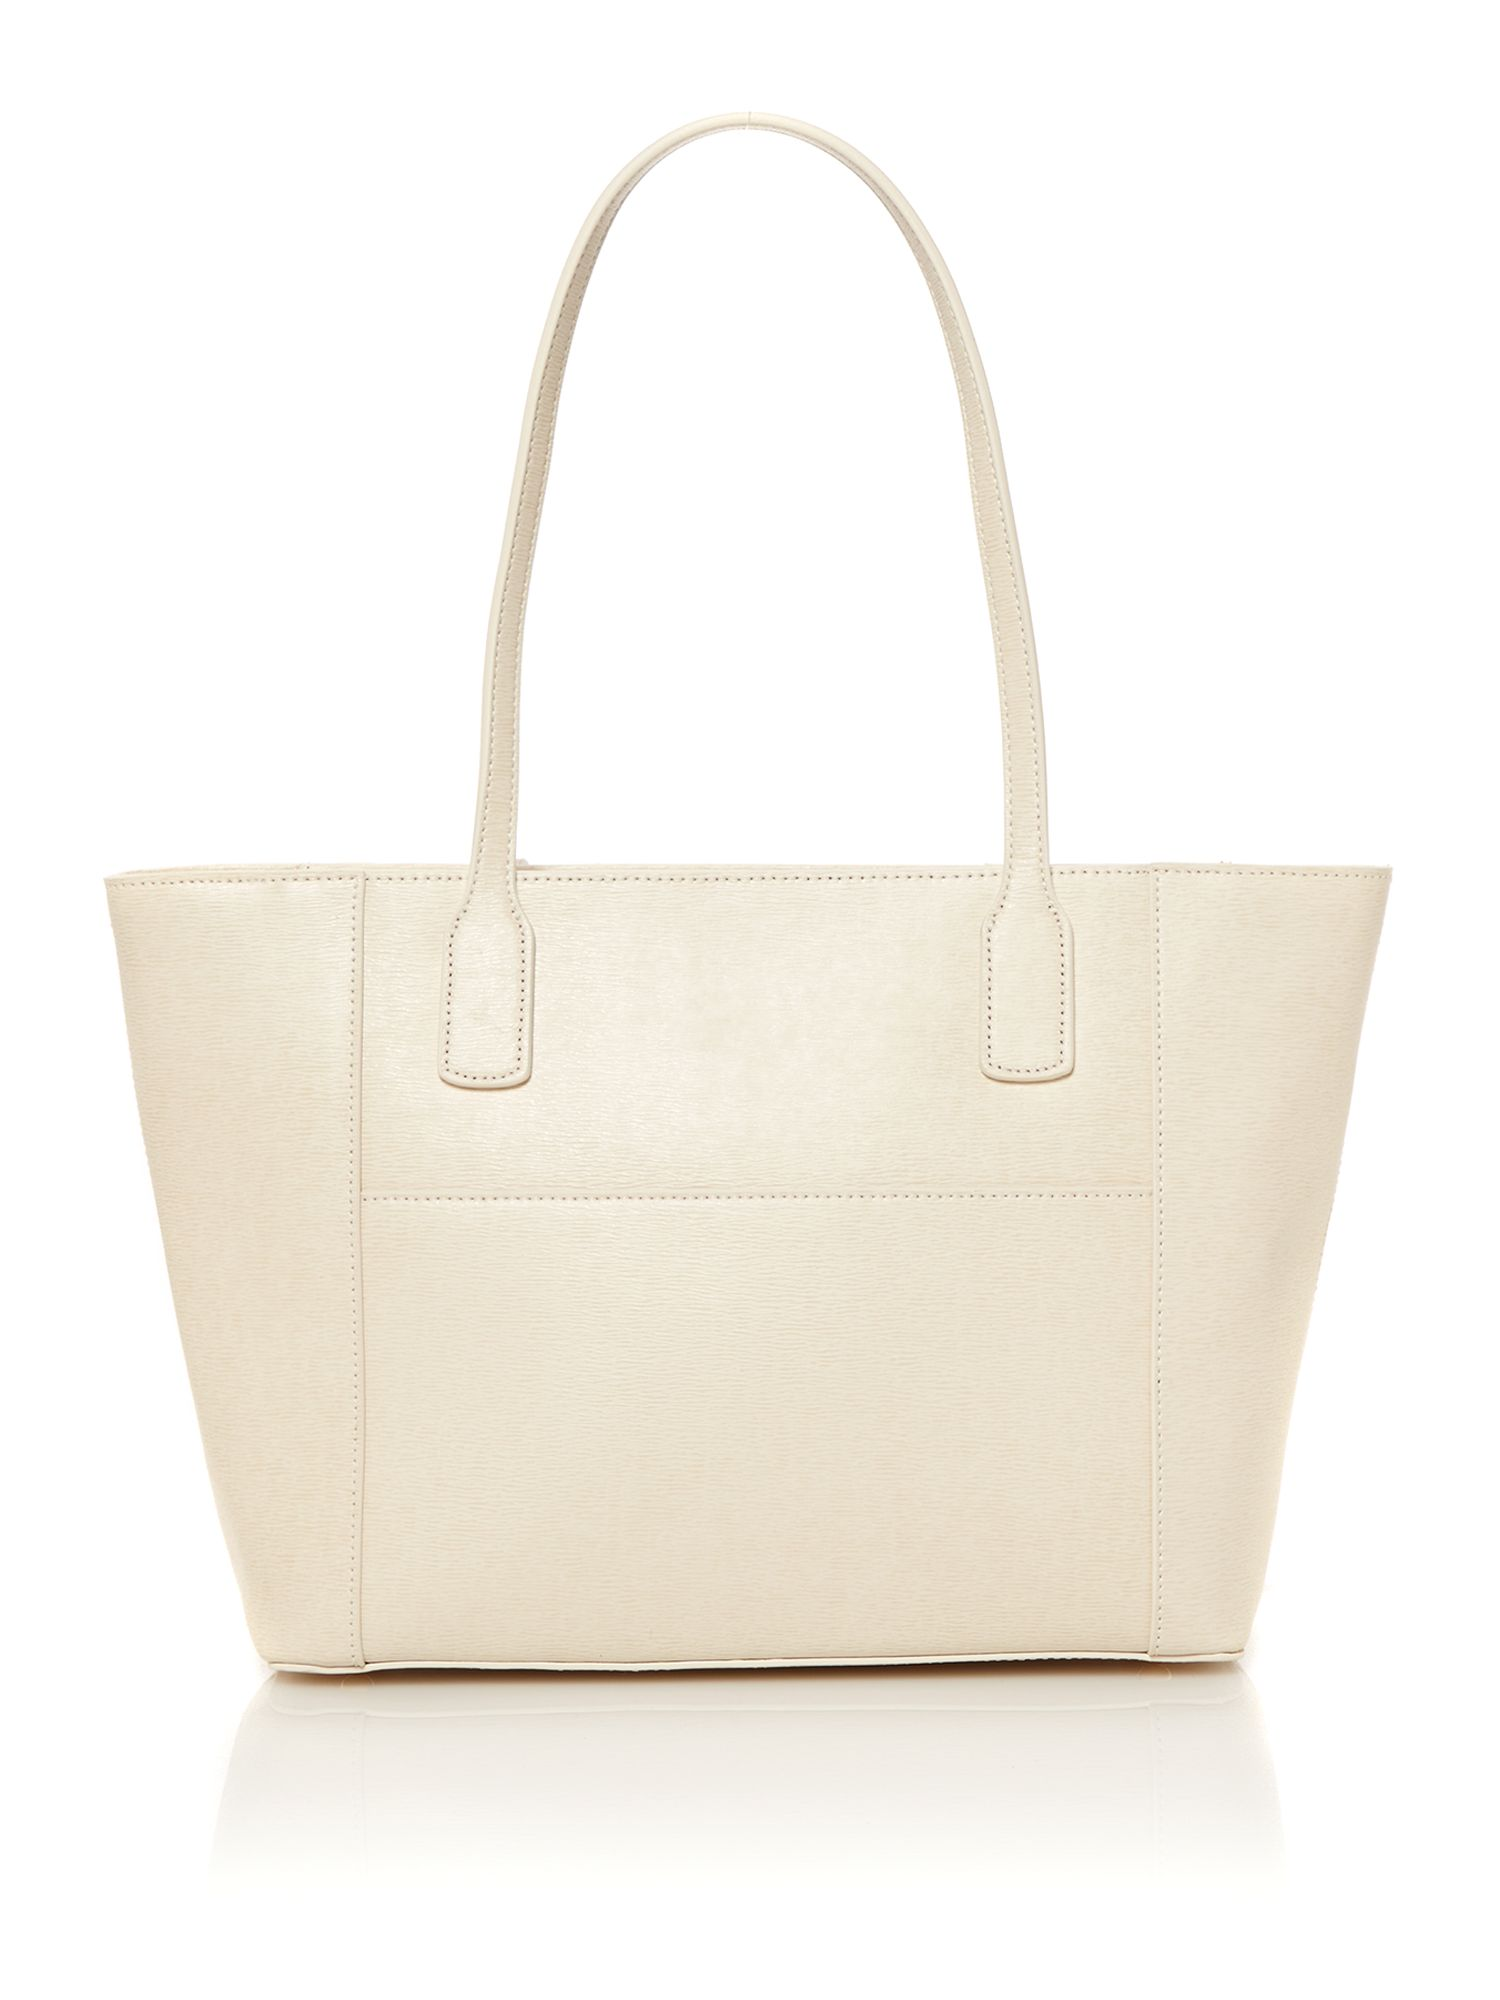 Newbury neutral tote bag